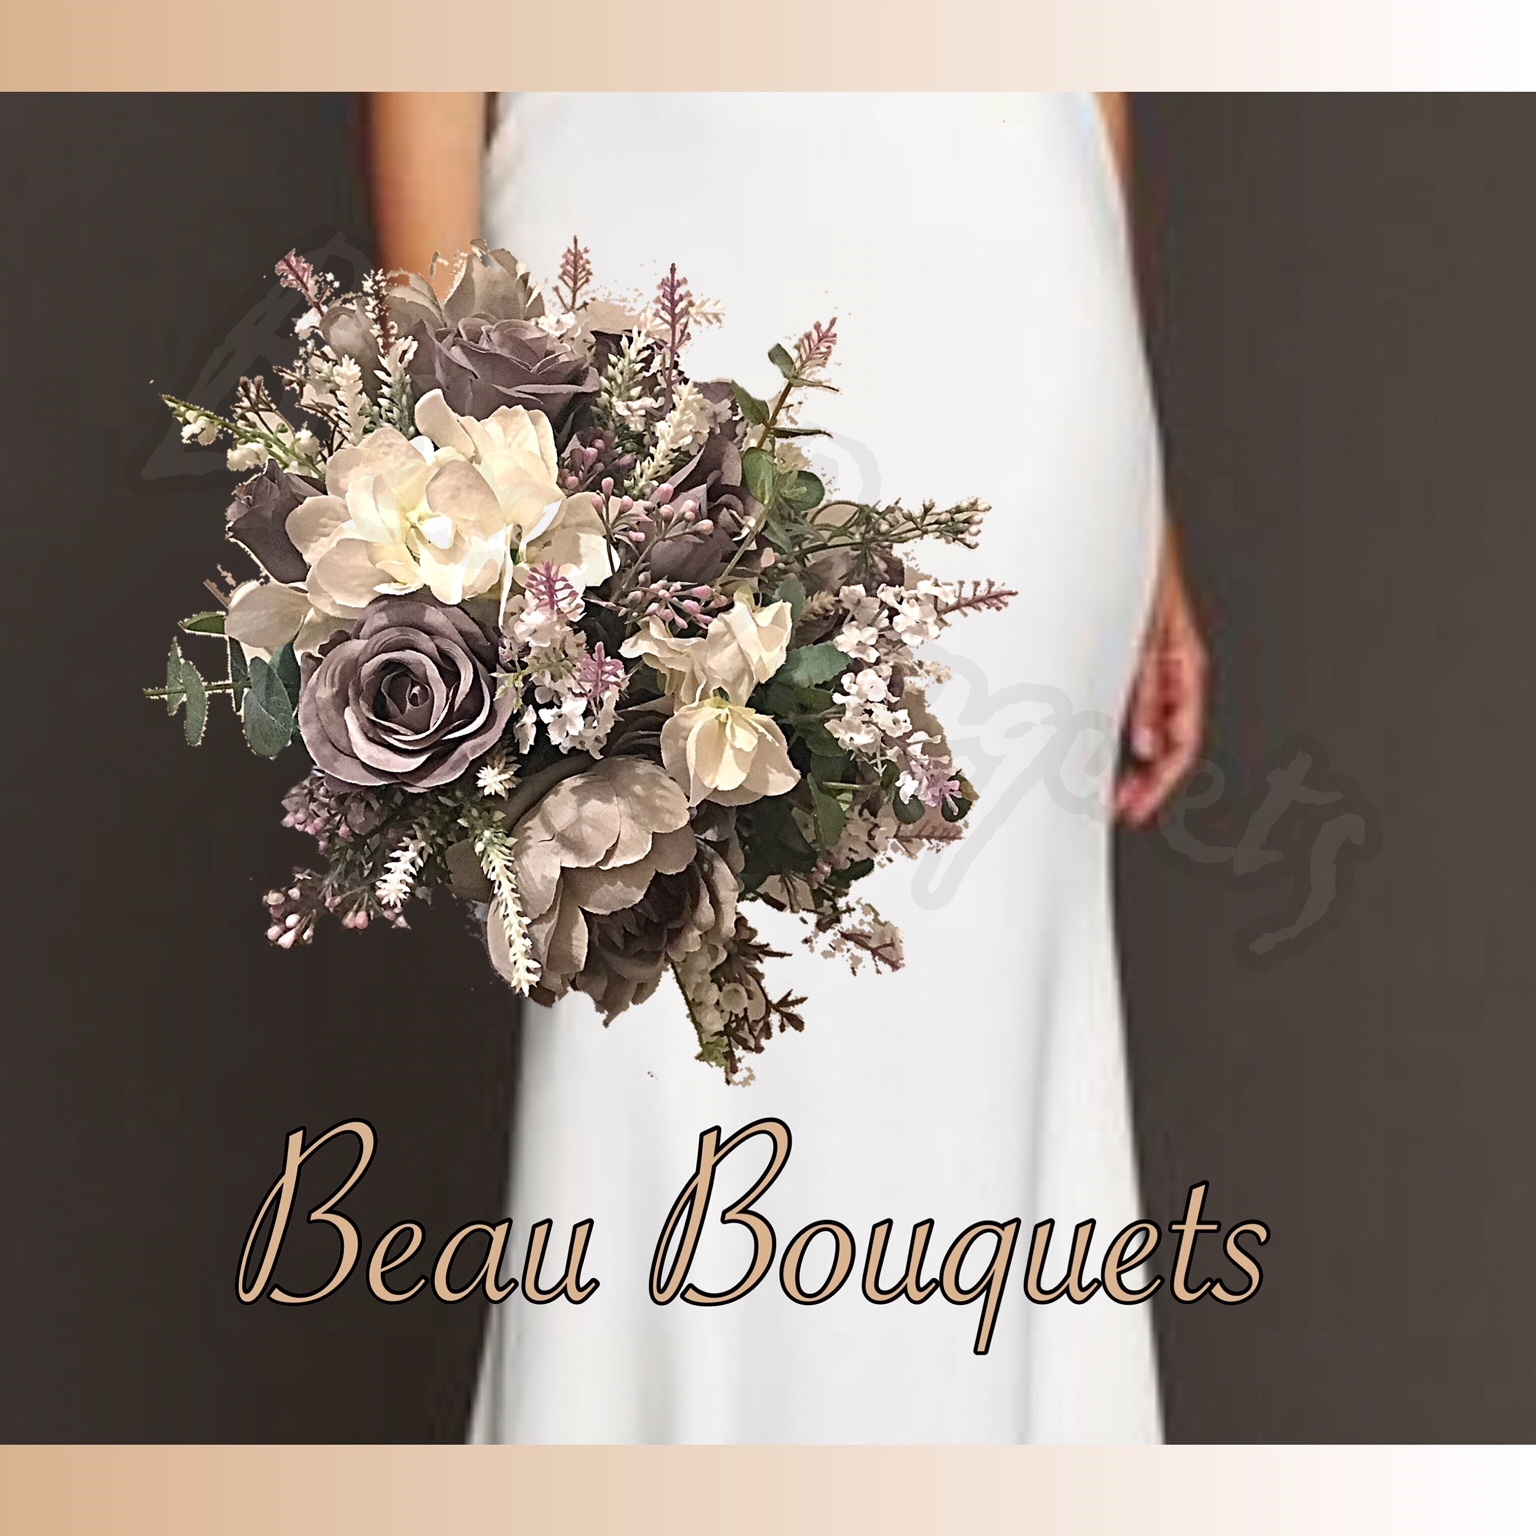 FANCIFUL - ROUND BRIDE BOUQUET ROSE LAVENDER EUCALYPTUS RUSCUS WAXFLOWER GREY IVORY